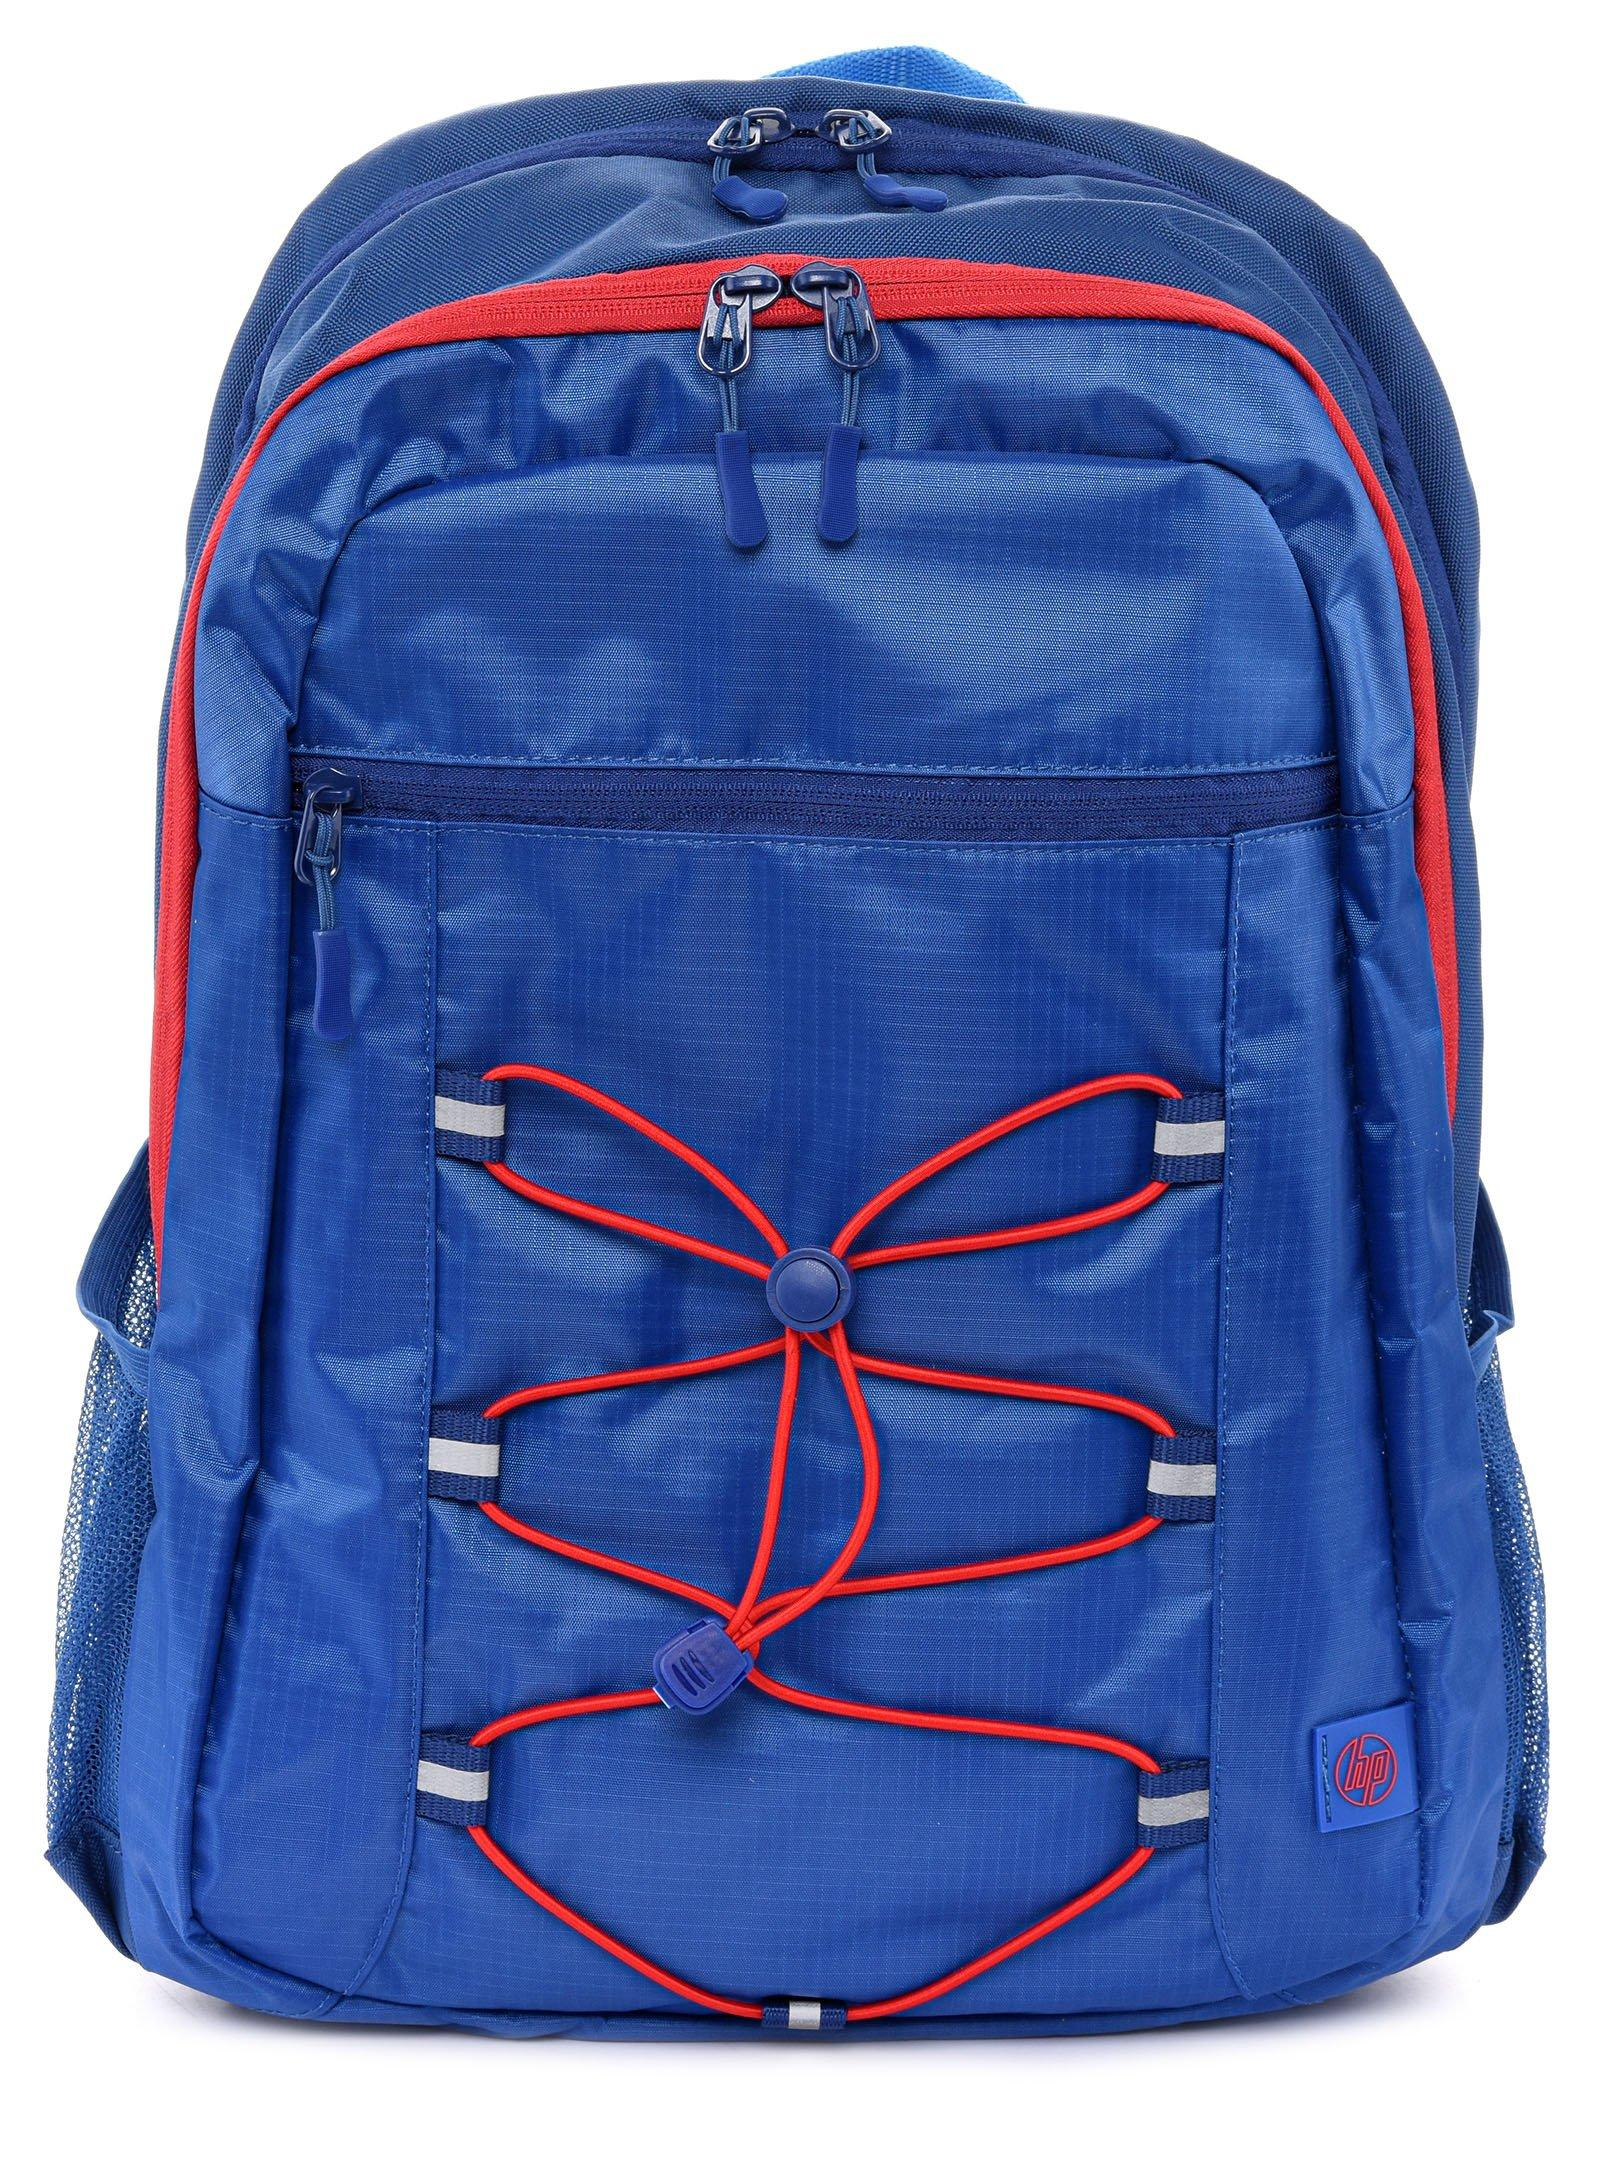 HP 15.6 Active Backpack, Marine Blue/Coral Red - eXtra Oman